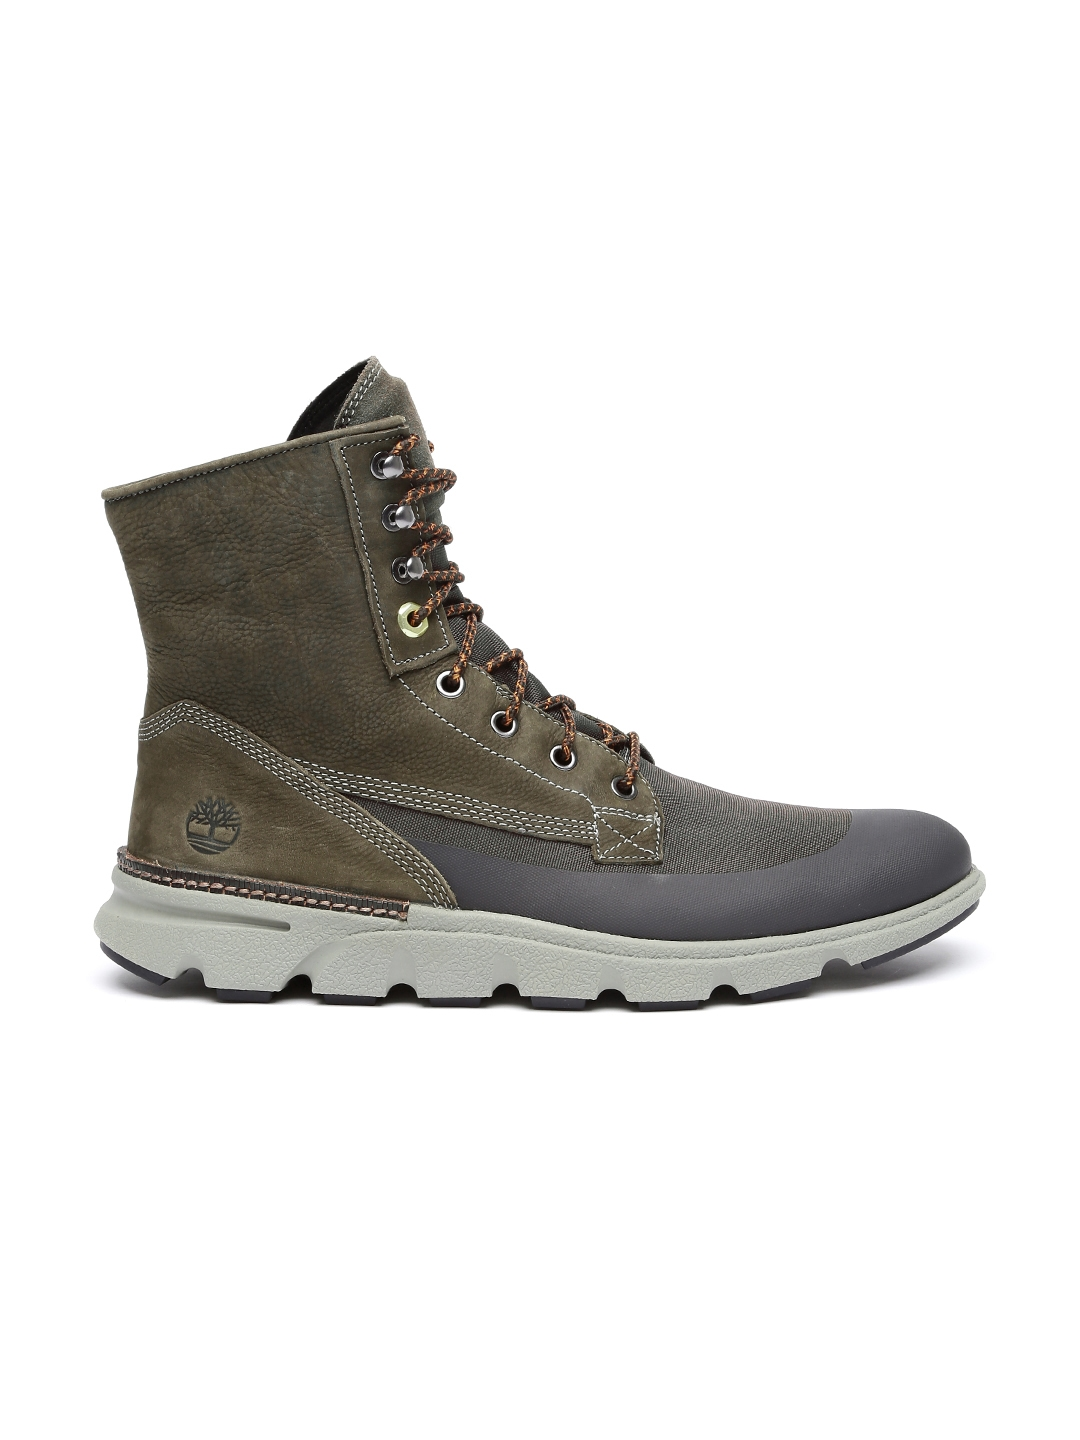 d16035aca98b Buy Timberland Men Olive Green Solid Leather Mid Top Flat Boots ...